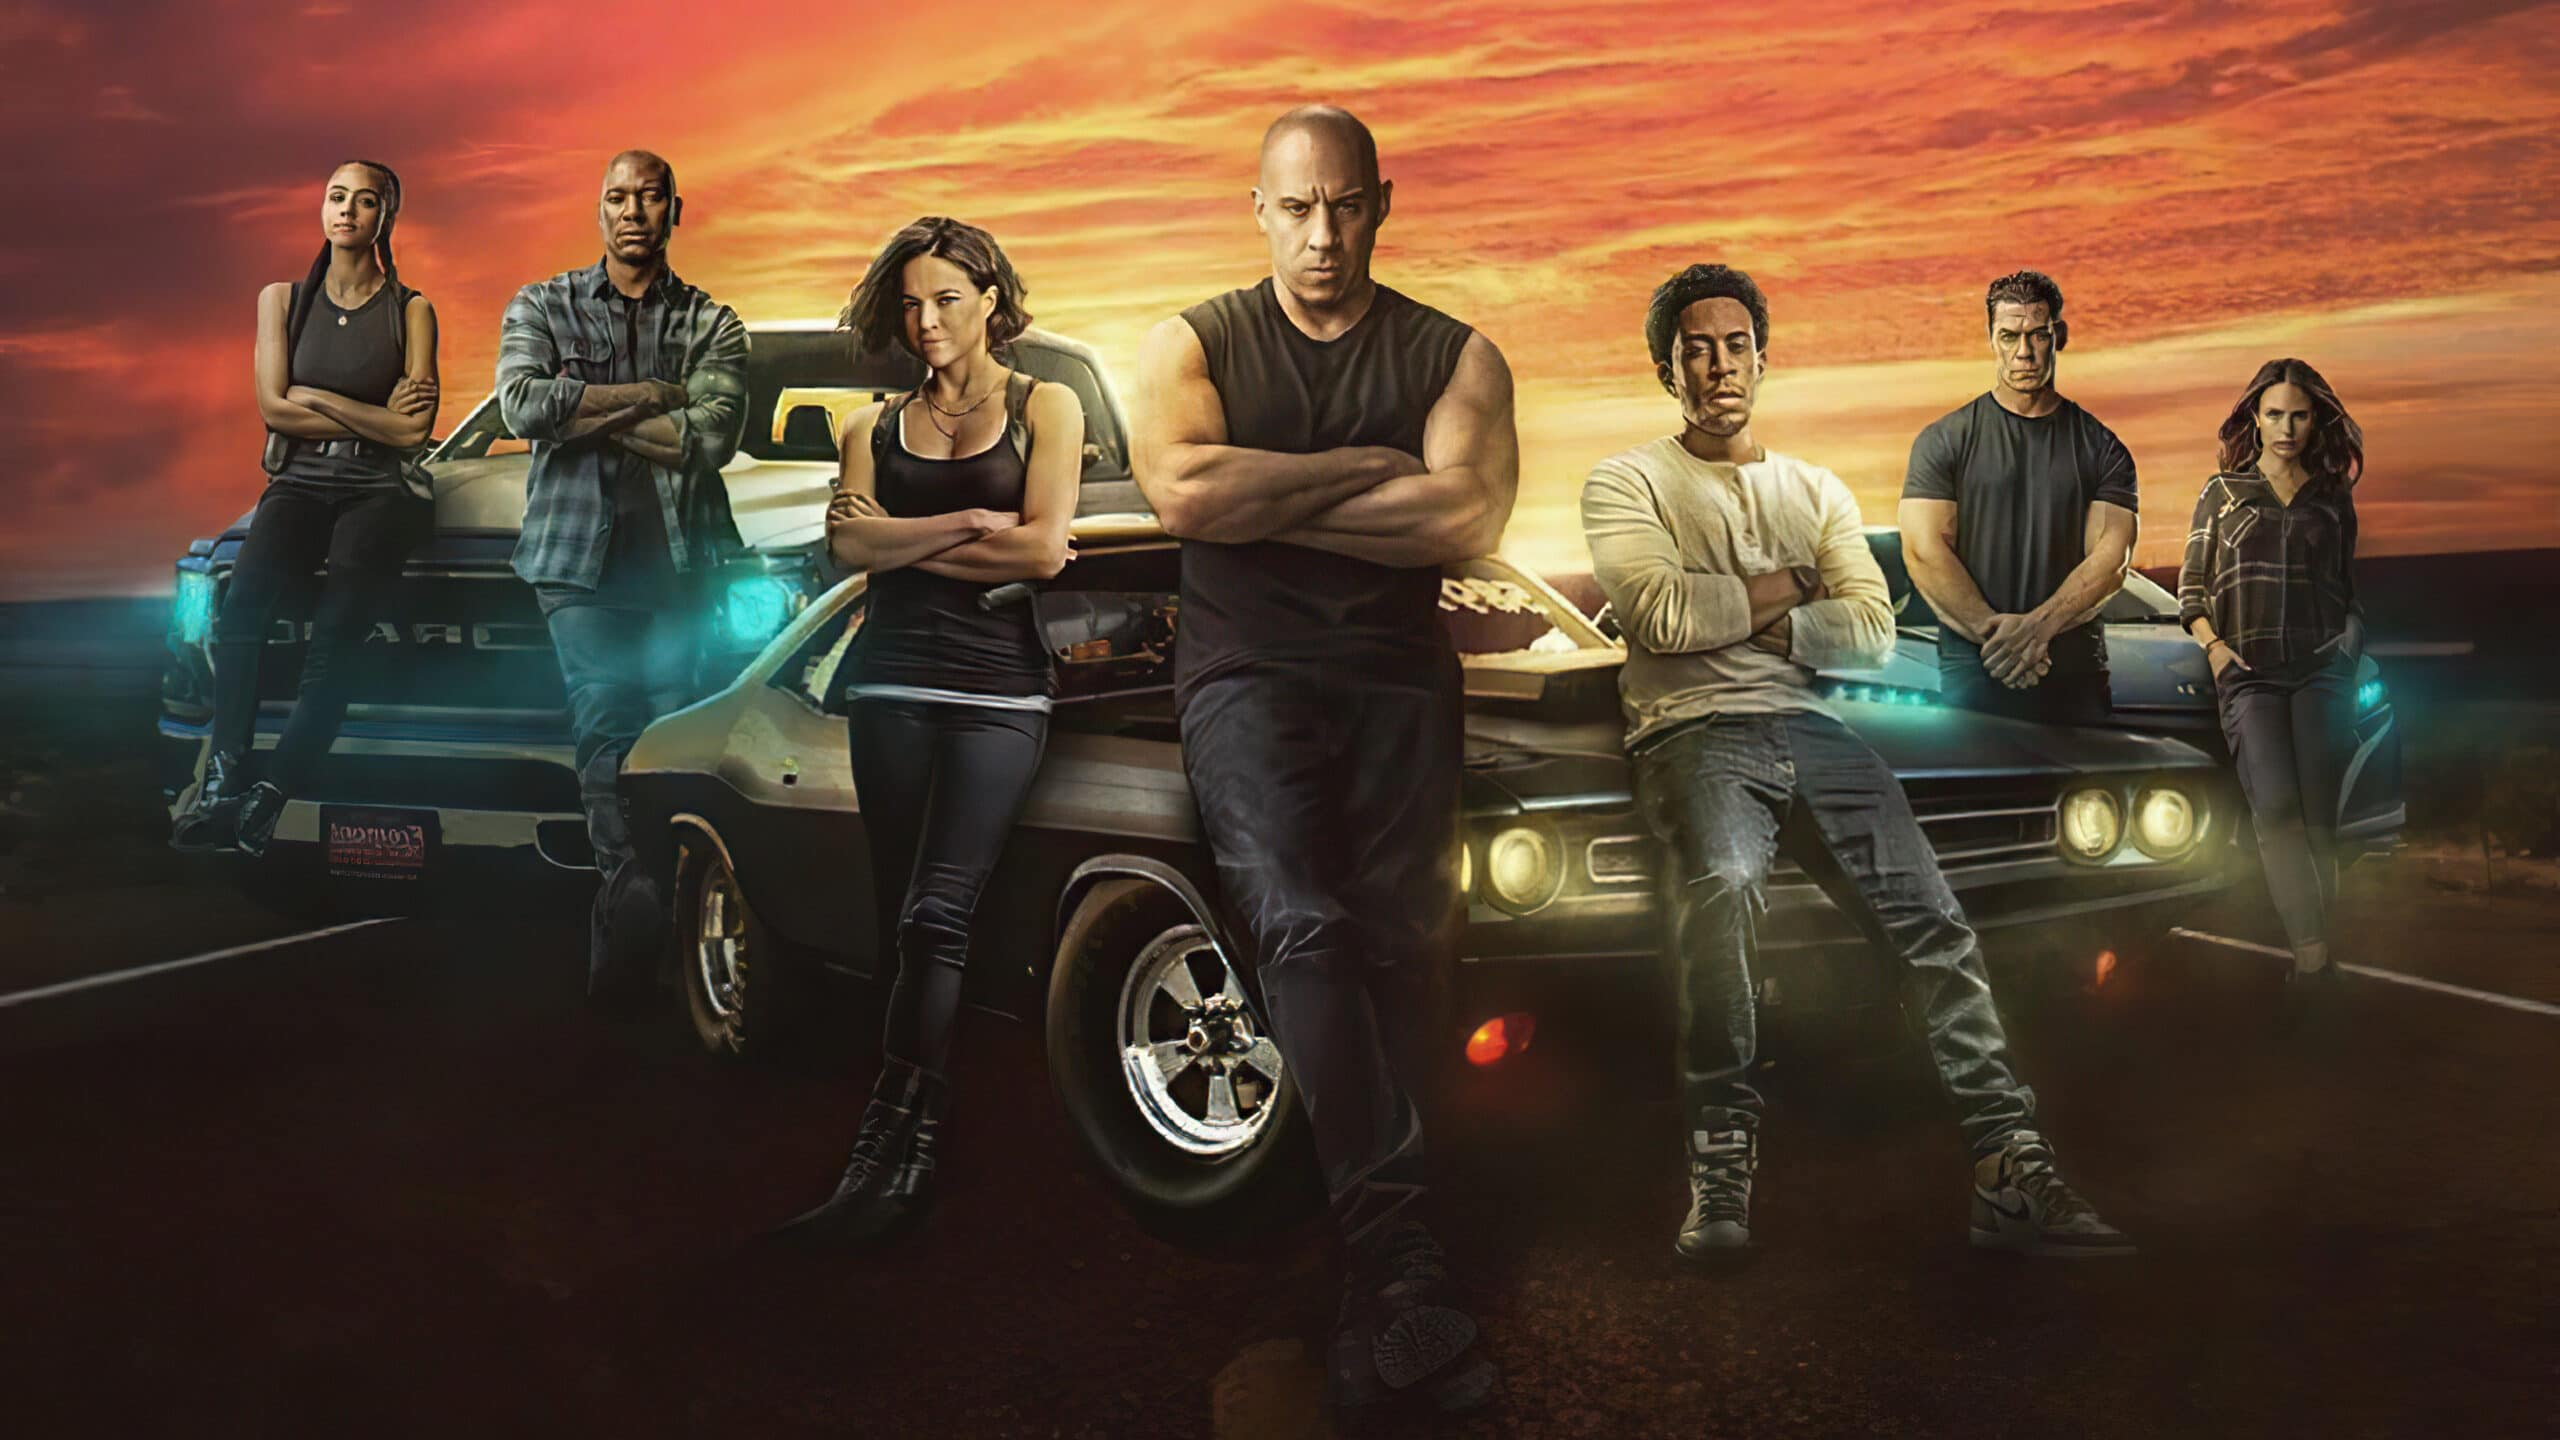 Fast & Furious 9: The Fast Saga review